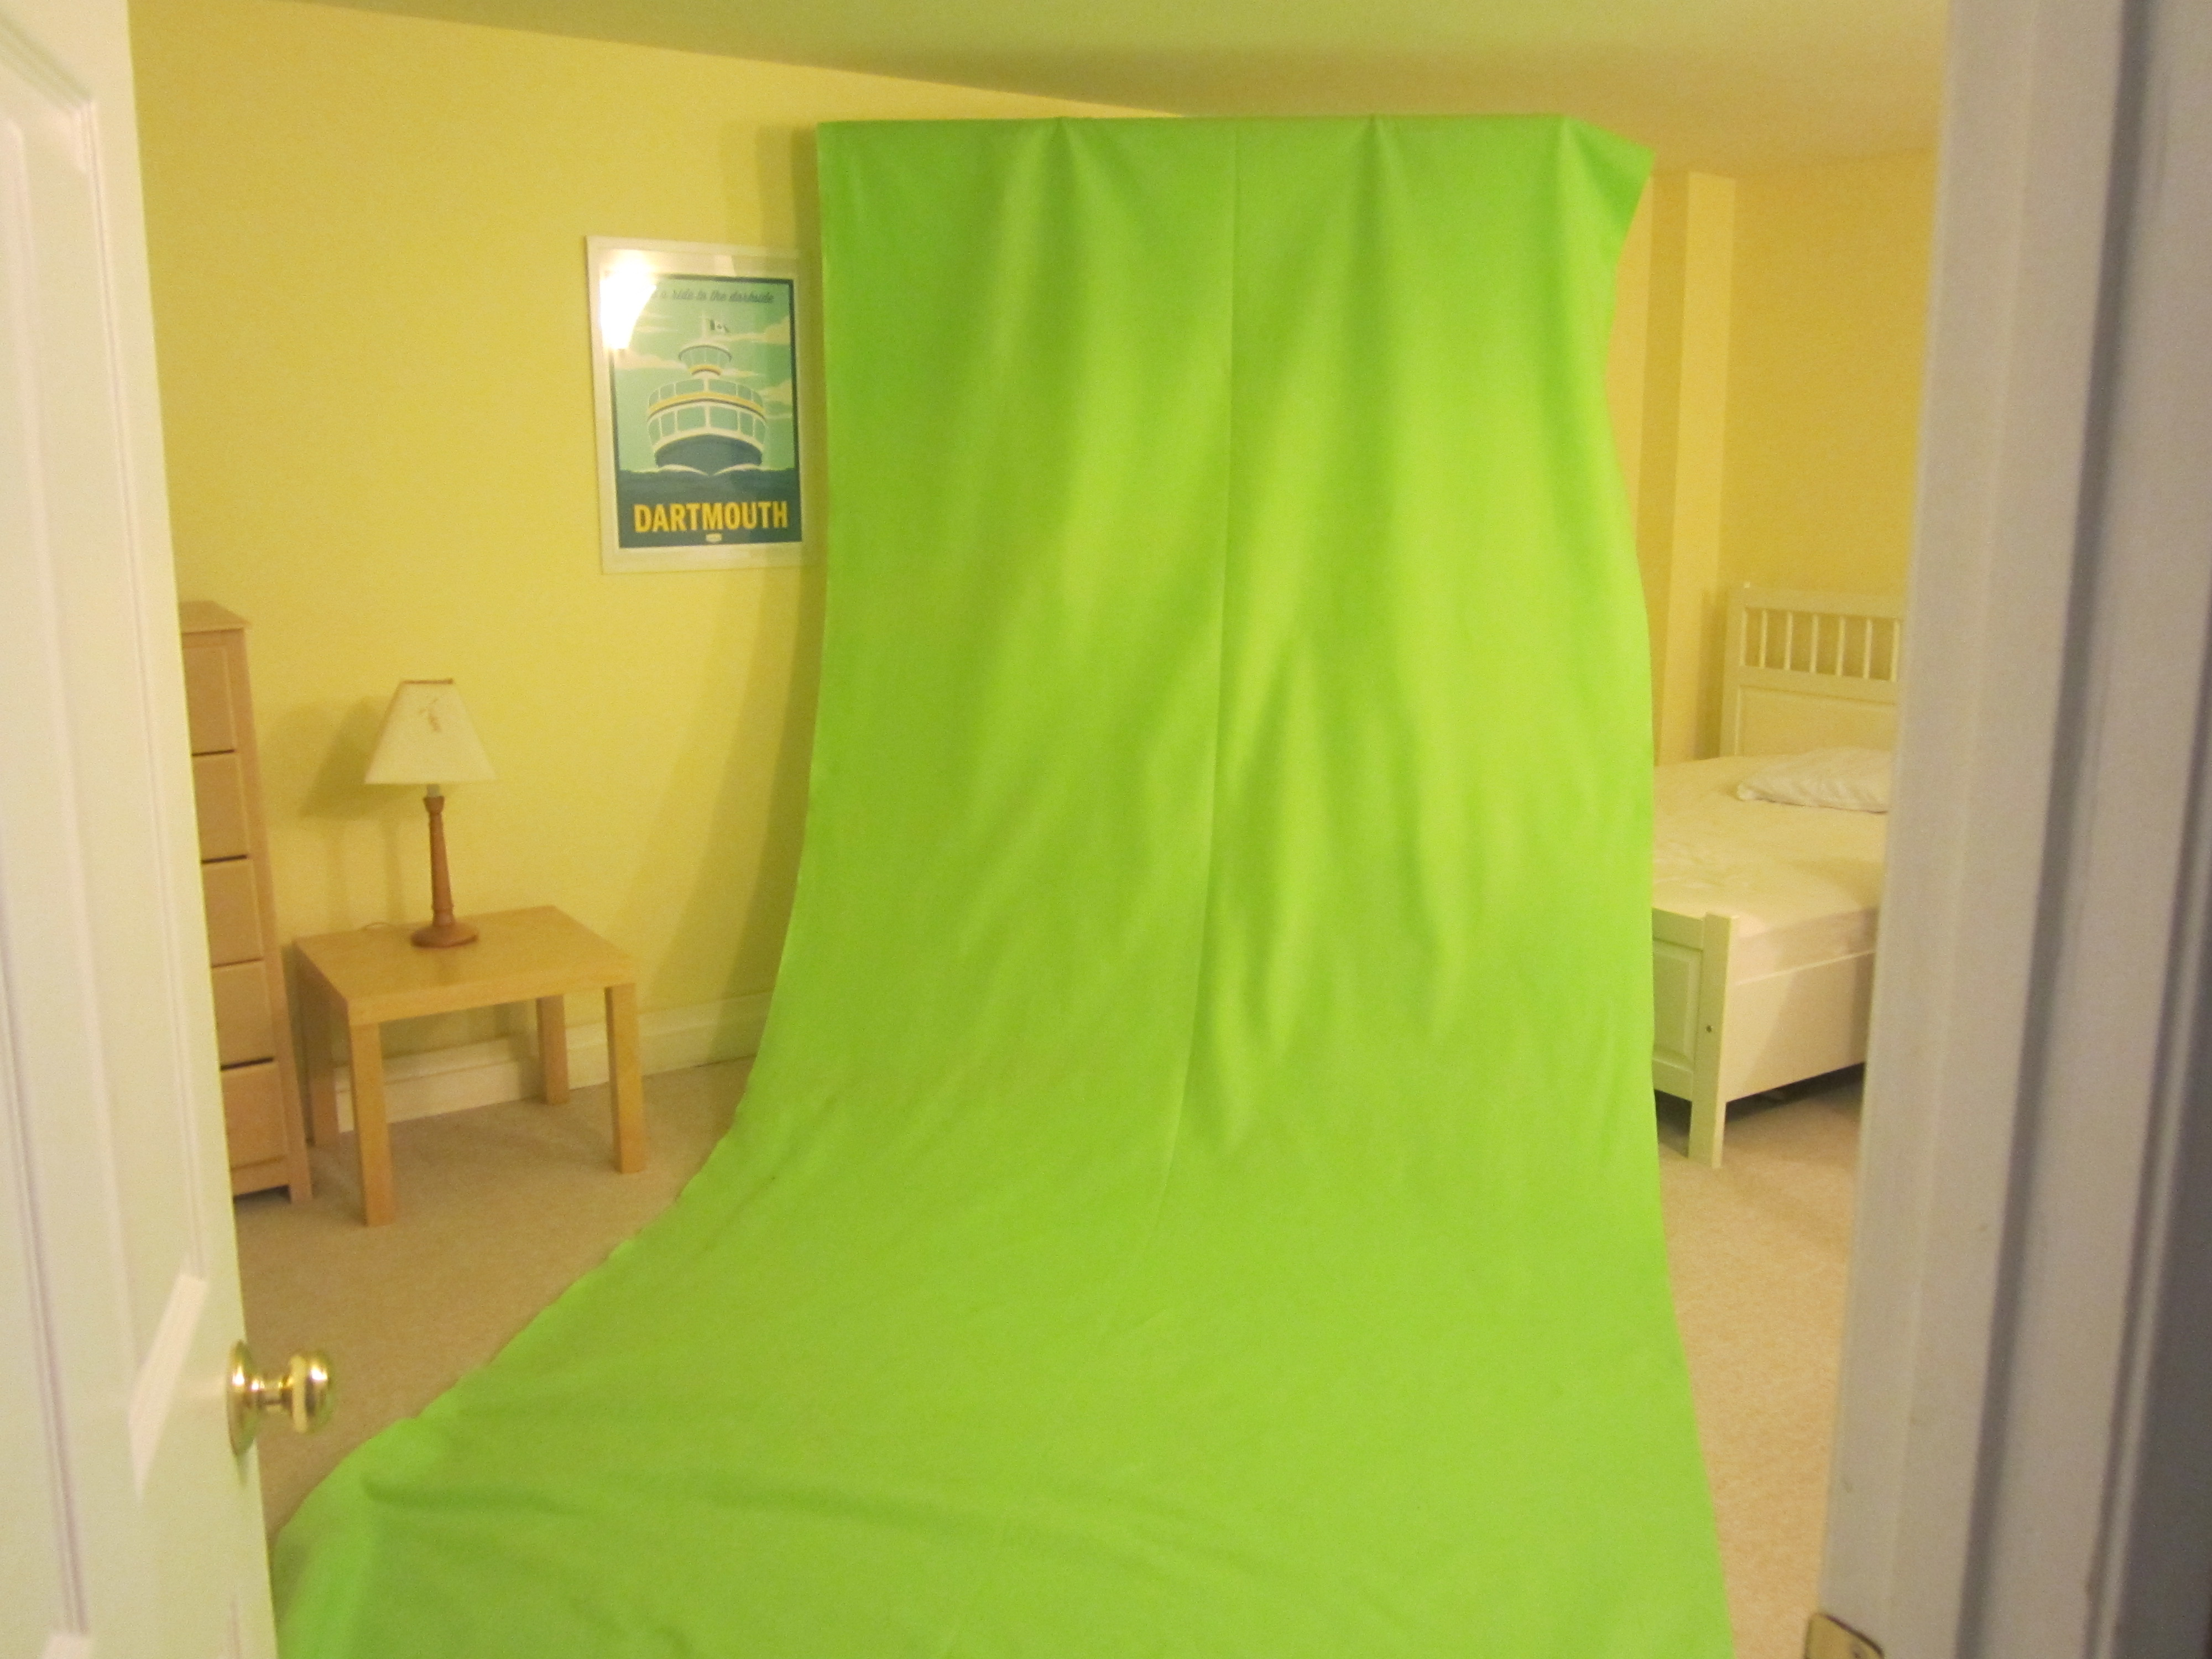 DIY Green Screen from green felt